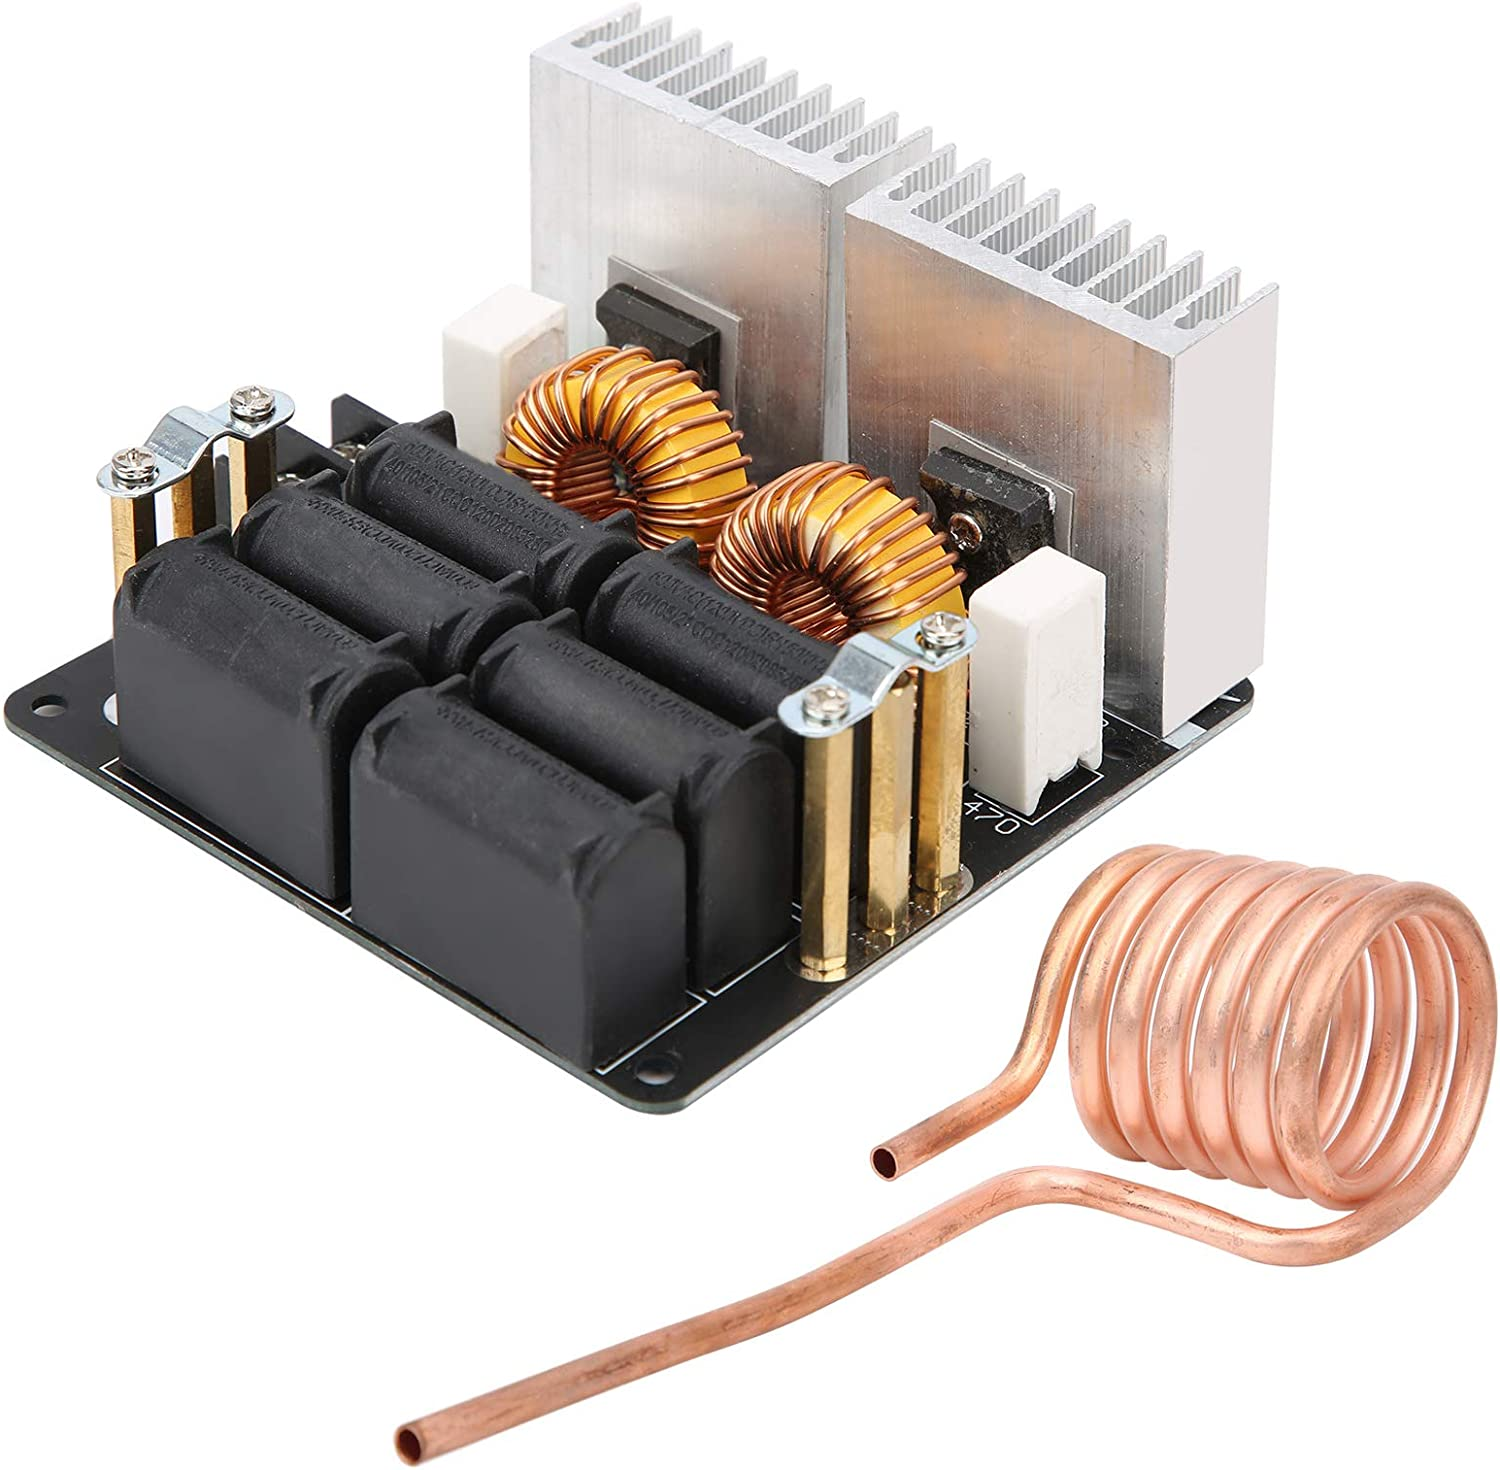 Induction Heater Module Full Copper Frequency High Stable Induc Sale Ranking TOP9 item